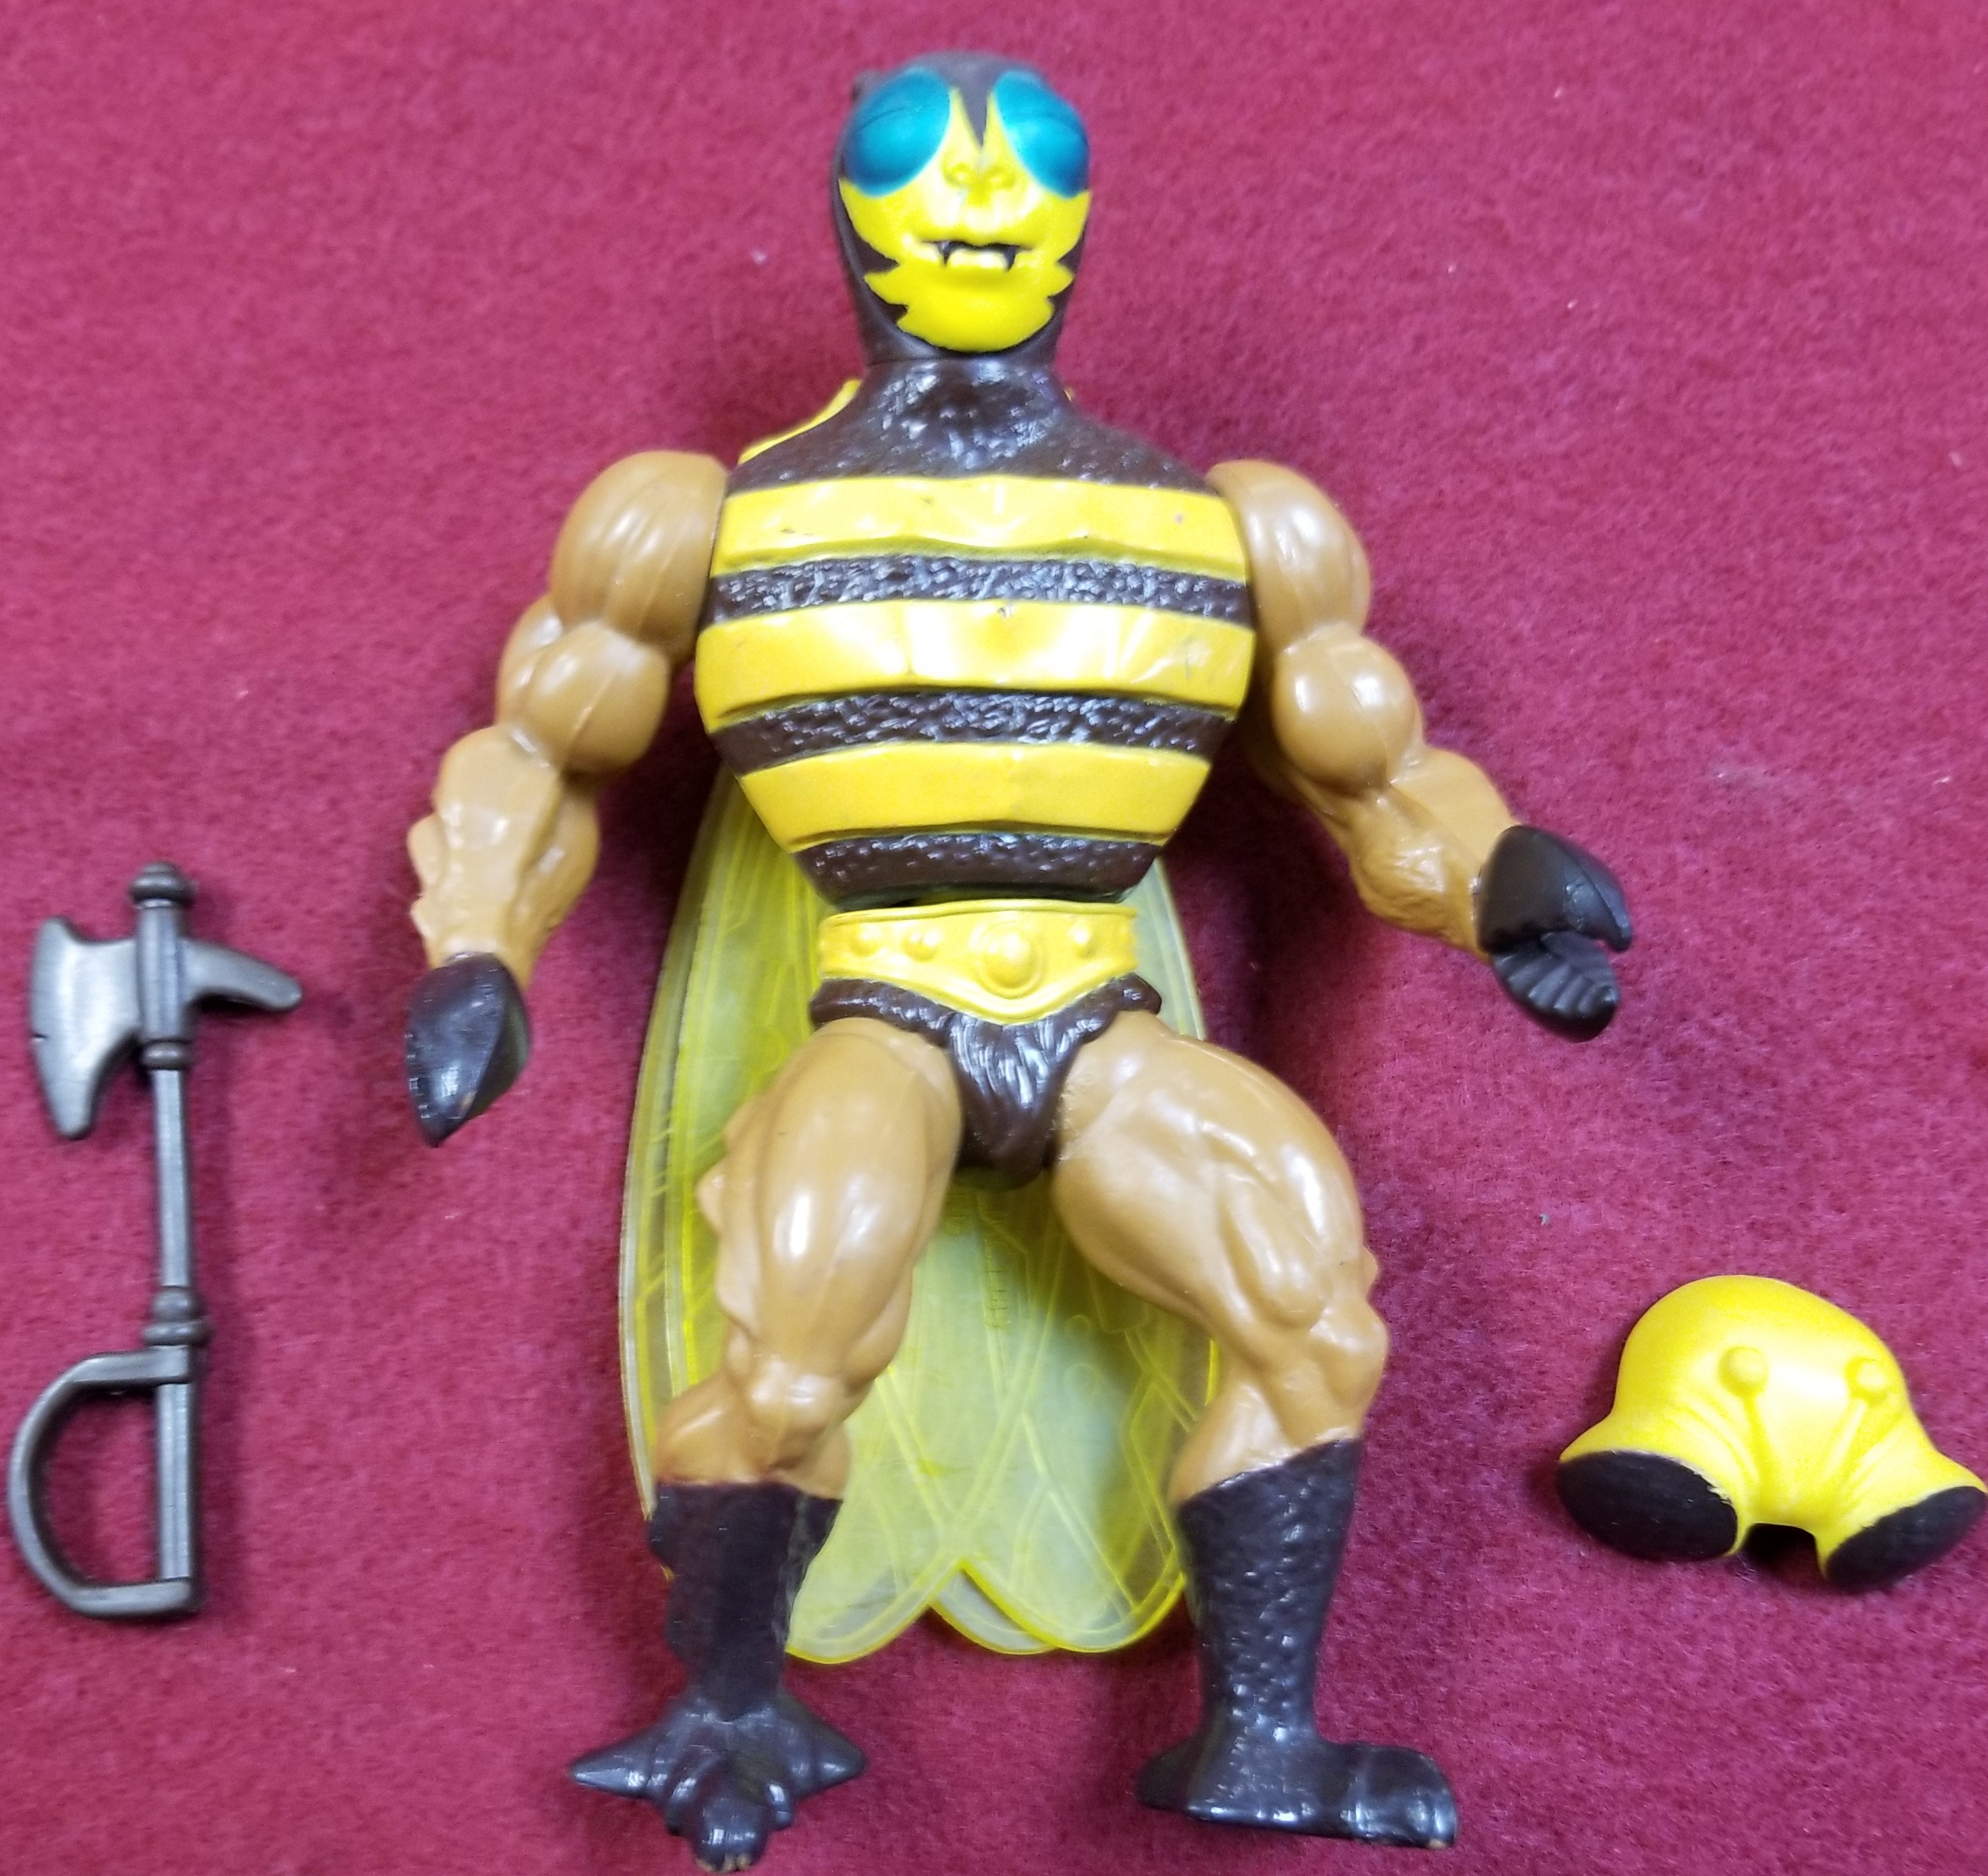 MASTERS OF THE UNIVERSE CLASSIC FIGURES - BUZZ-OFF